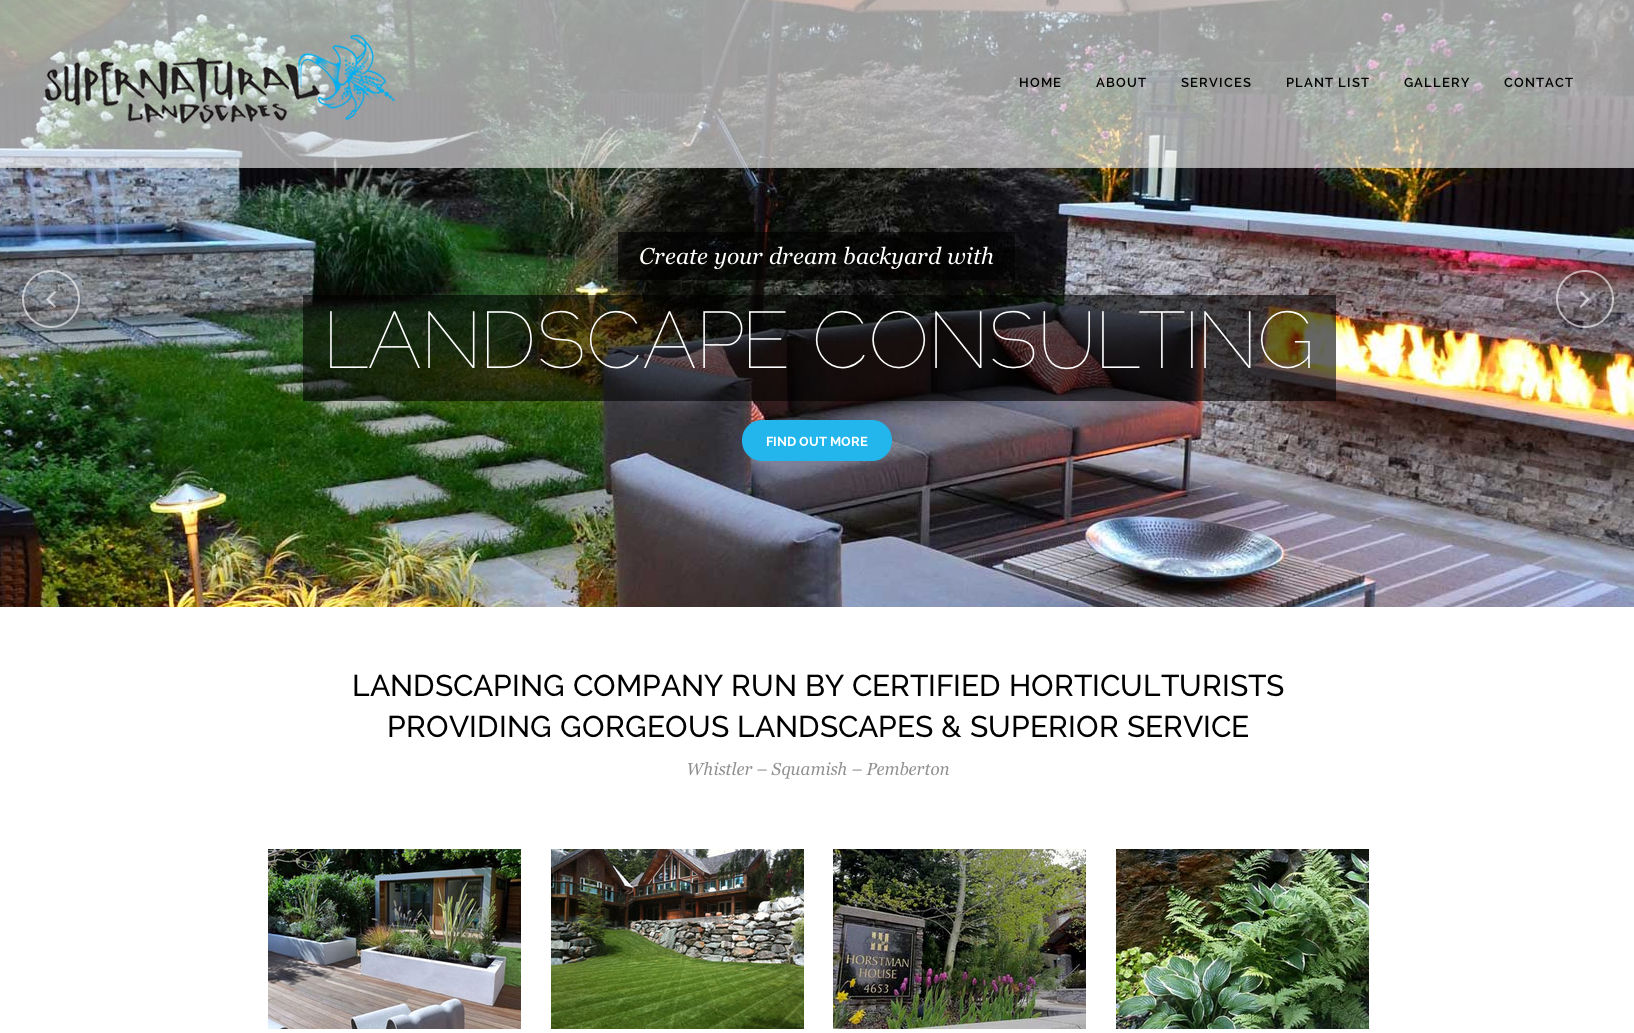 Sea Salt Web Design Whistler landscape website